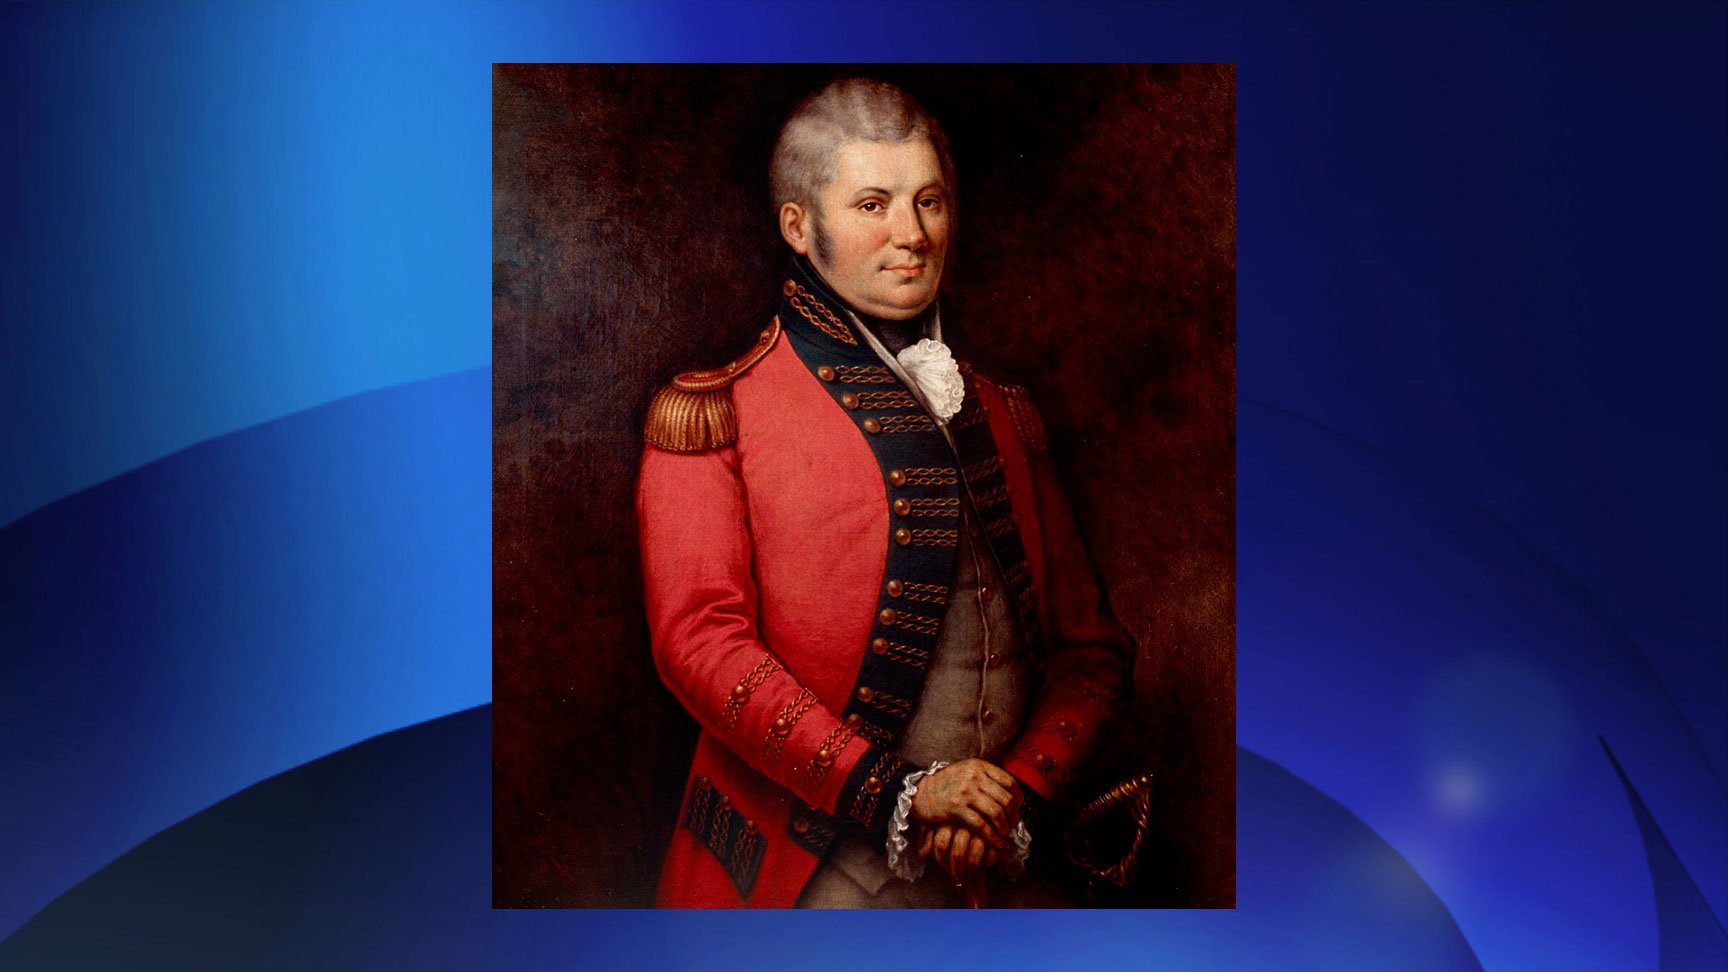 John Graves Simcoe was the lieutenant-governor of Upper Canada (now Ontario) from 1791-96. Oil on canvas by George Theodore Berthon (ca. 1881). GOVERNMENT OF ONTARIO ARCHIVES